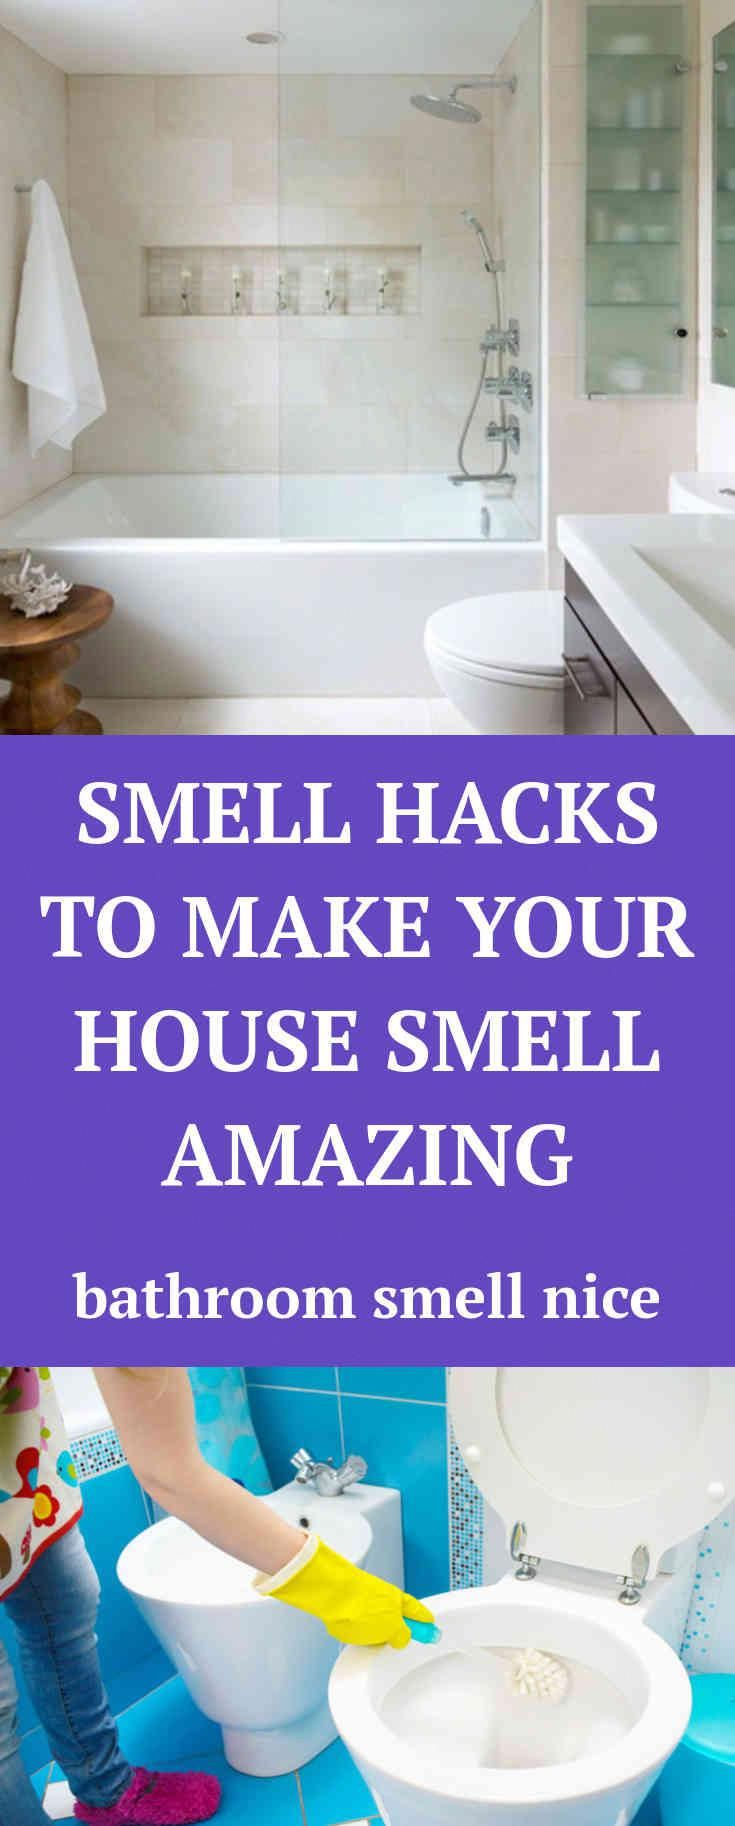 Amazing Learn About Bathroom Smells All What You Need Is Here Wow Homedecor Bathroom Smells Amazing Bathrooms Bathroom